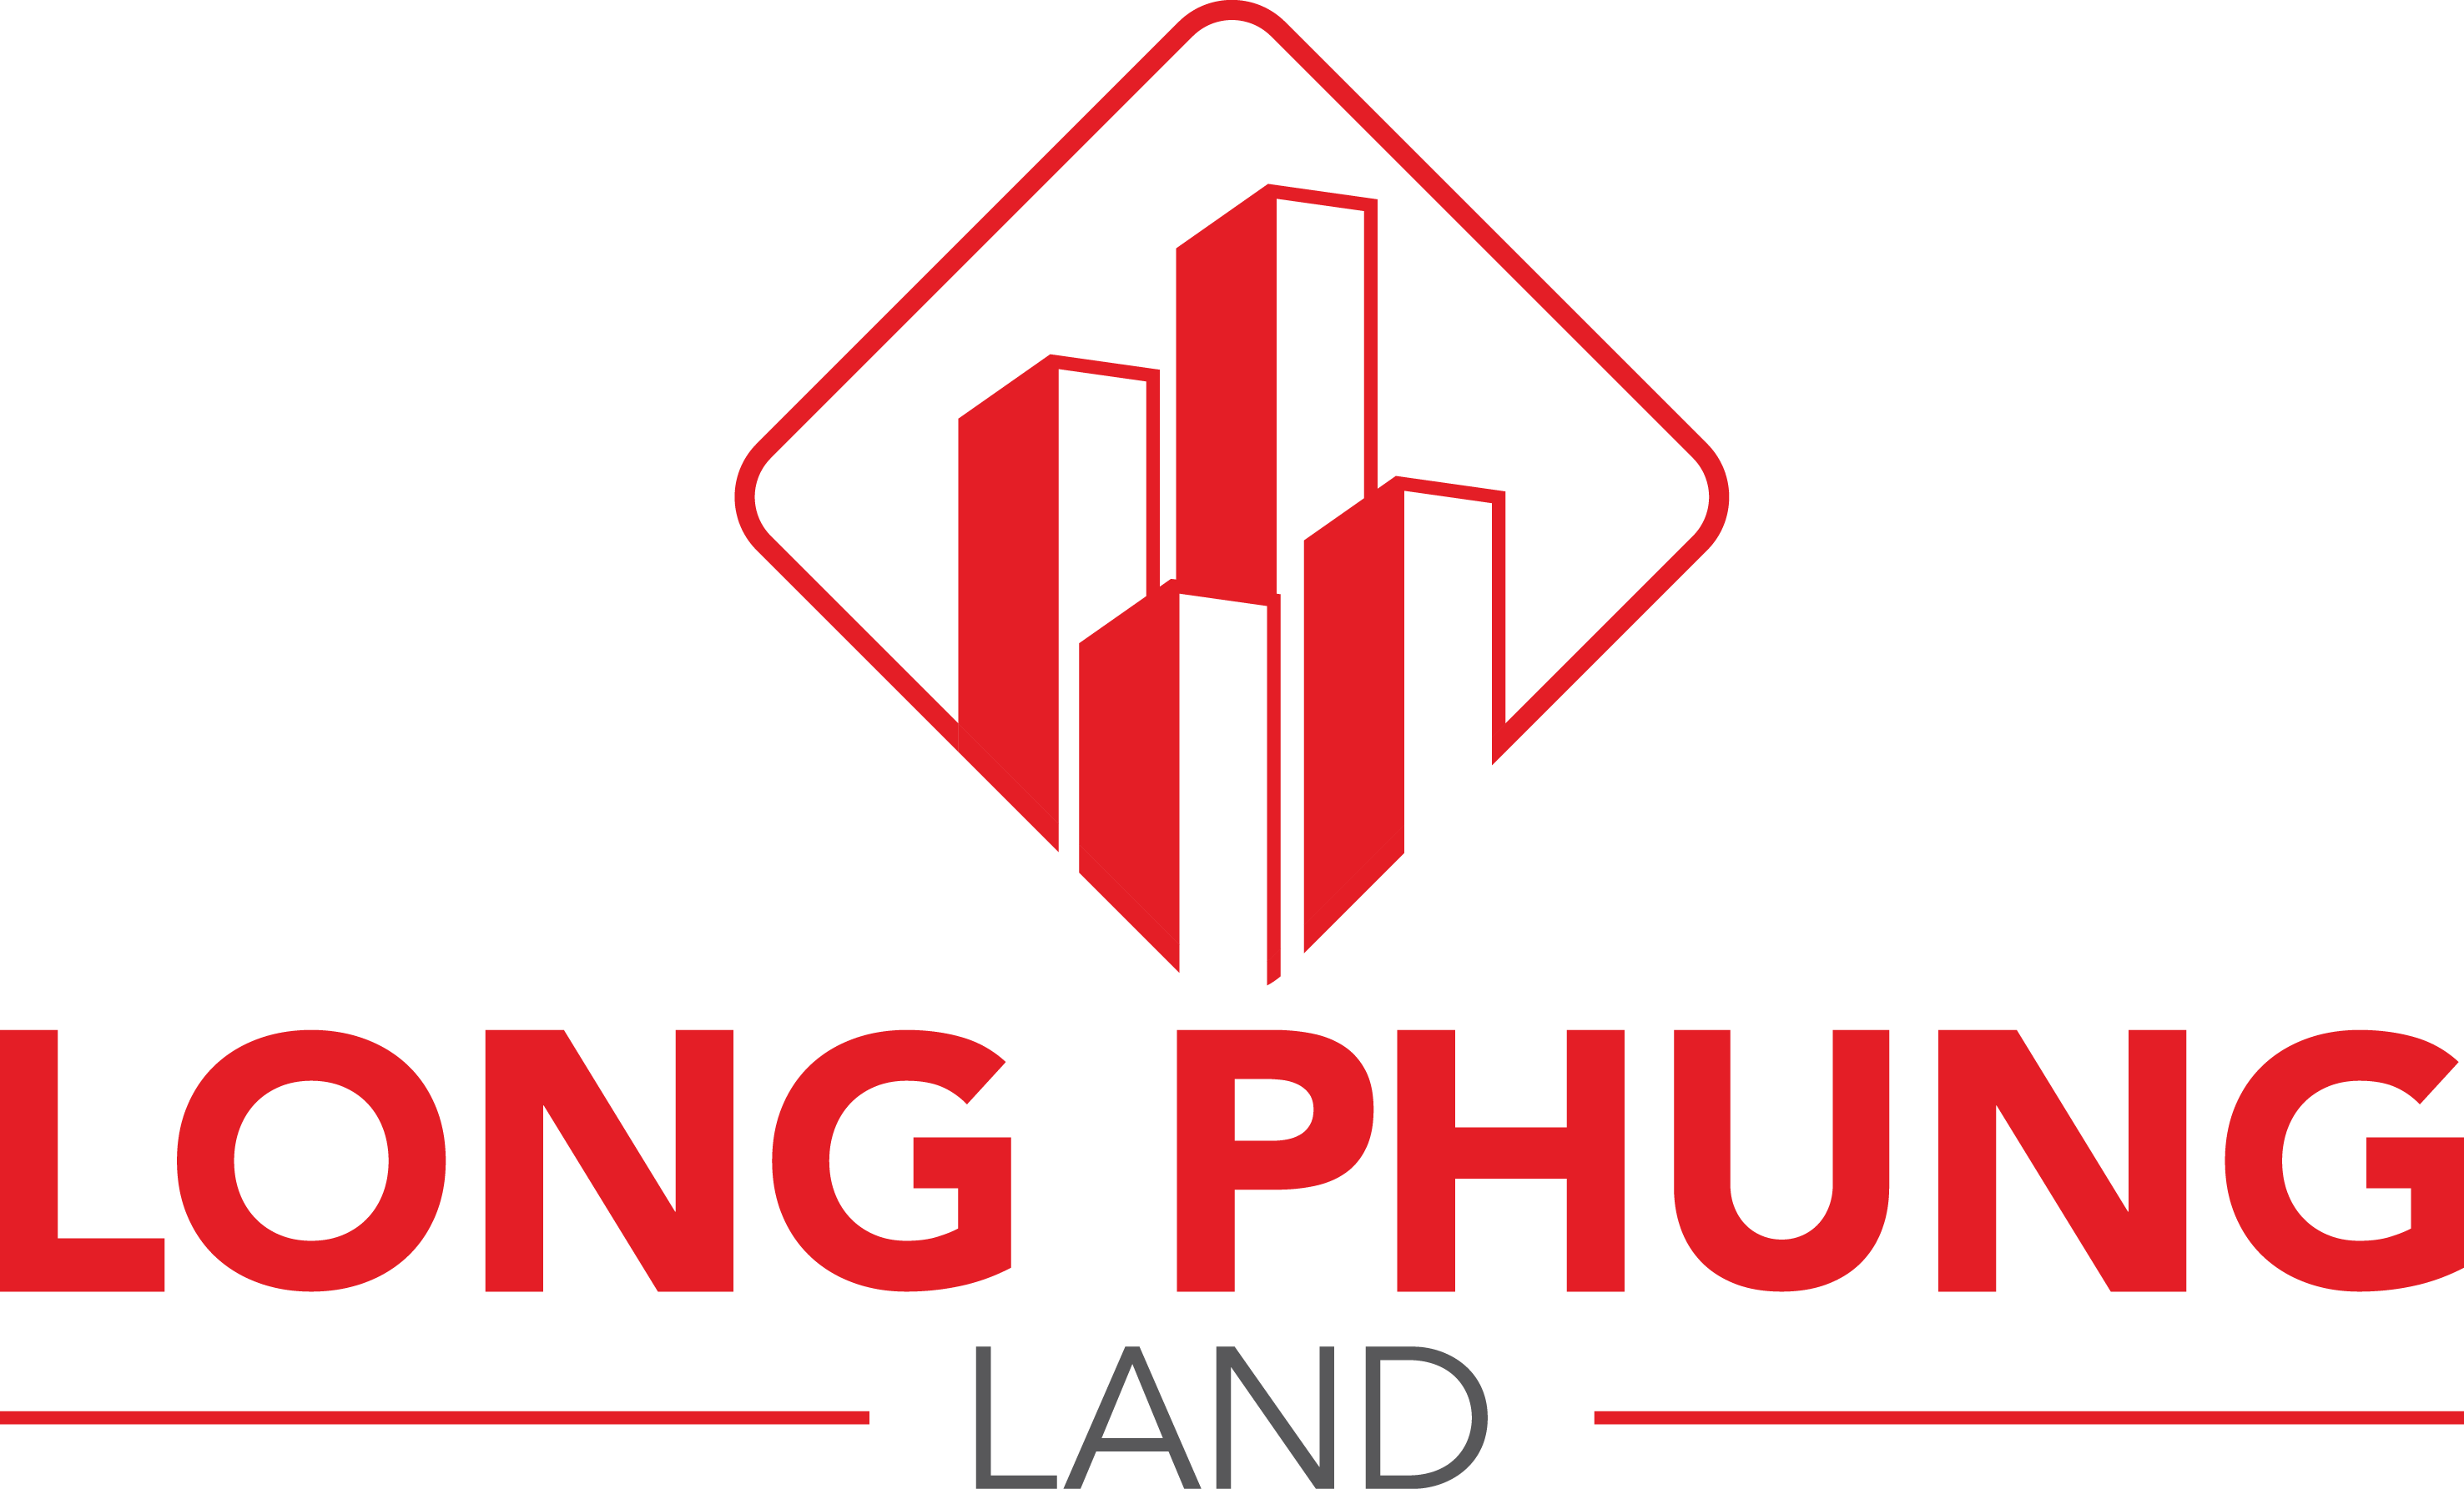 LONG PHỤNG LAND